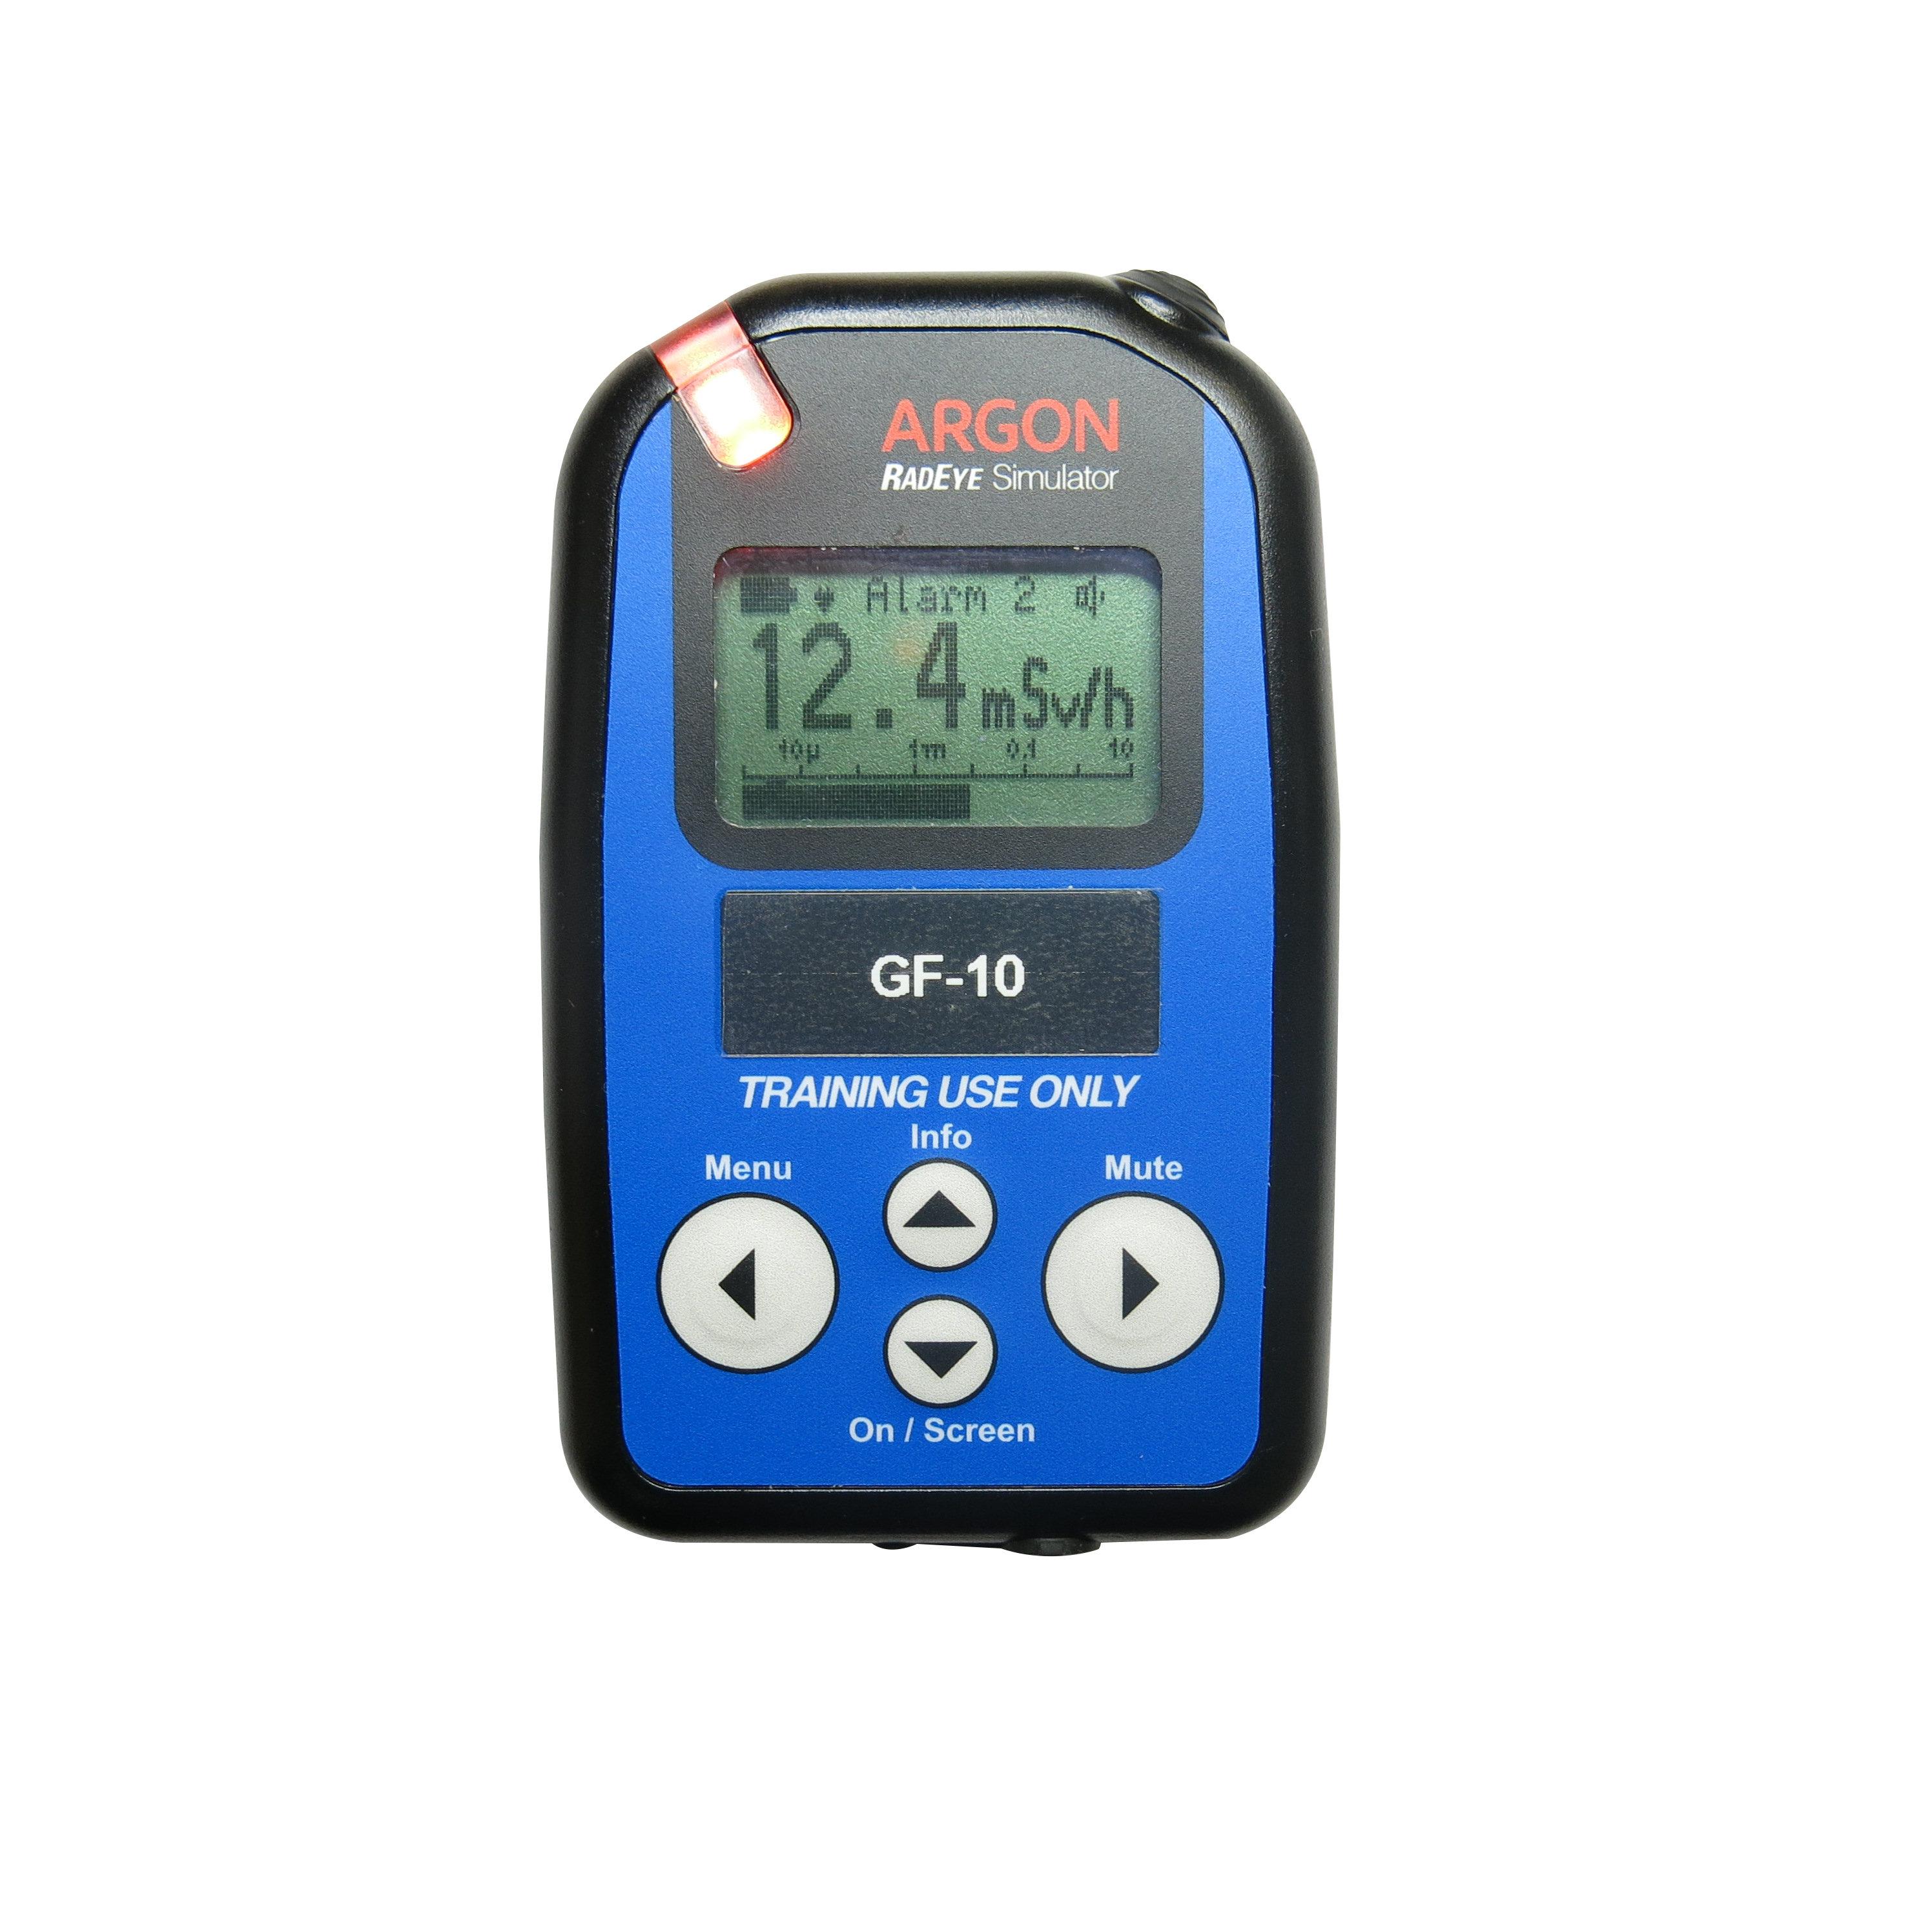 Argon Electronics (UK) Ltd_B2_RadEye GF-10_mSv_HR